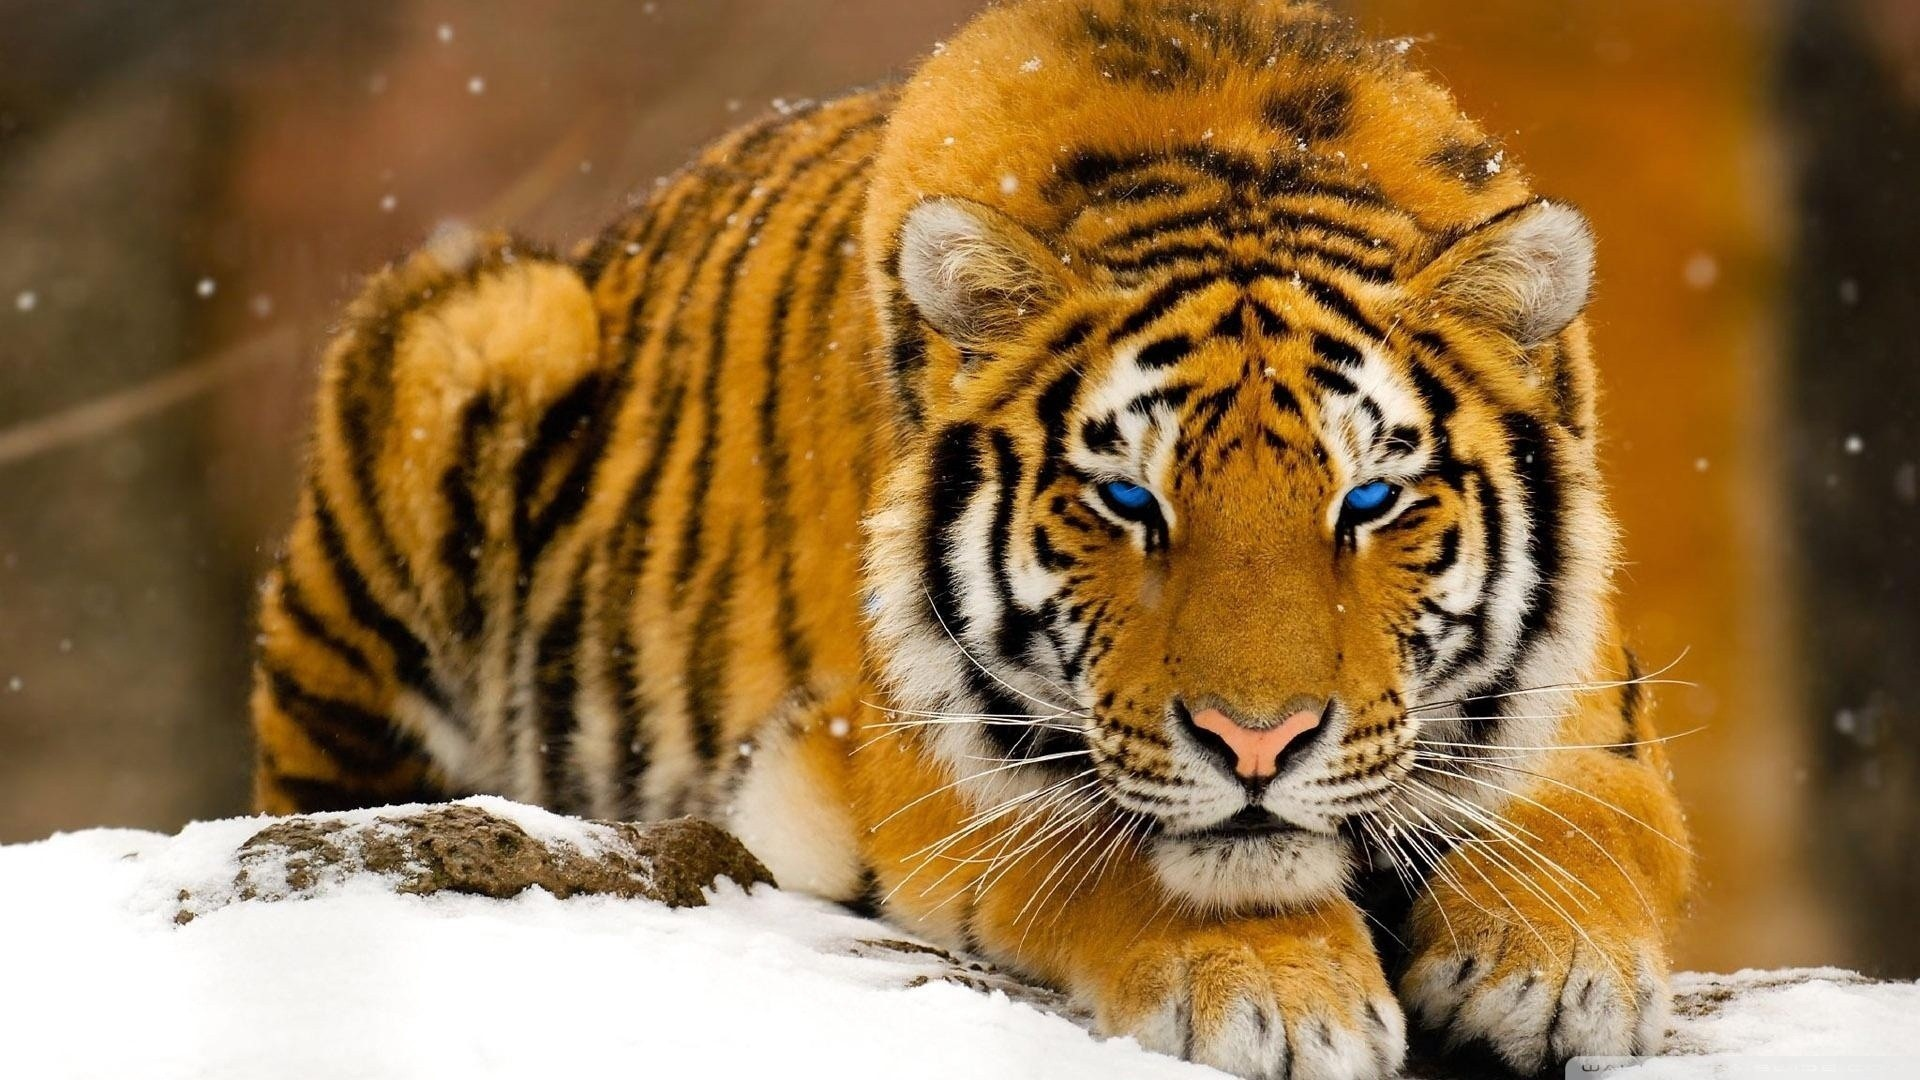 Snowy Tiger With Blue Eye | HD Wallpapers